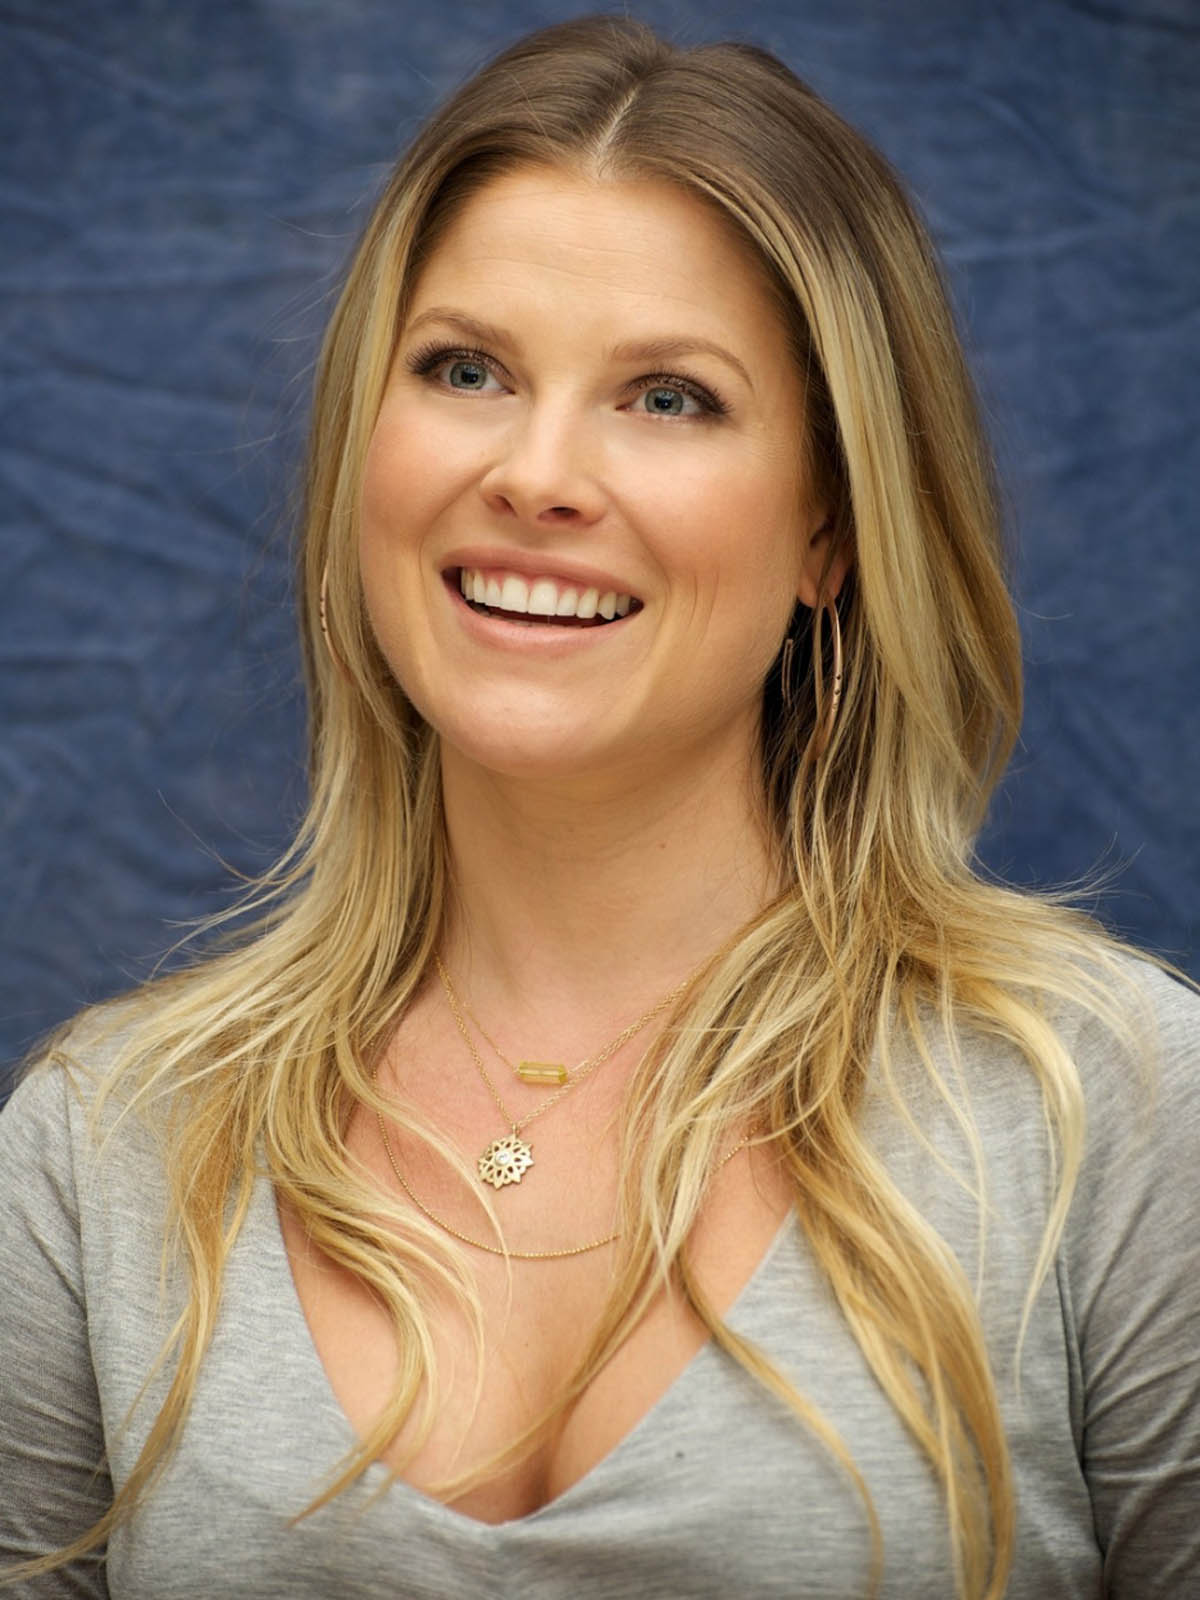 Ali Larter Net Worth, Age, Height, Husband, Profile, Movies